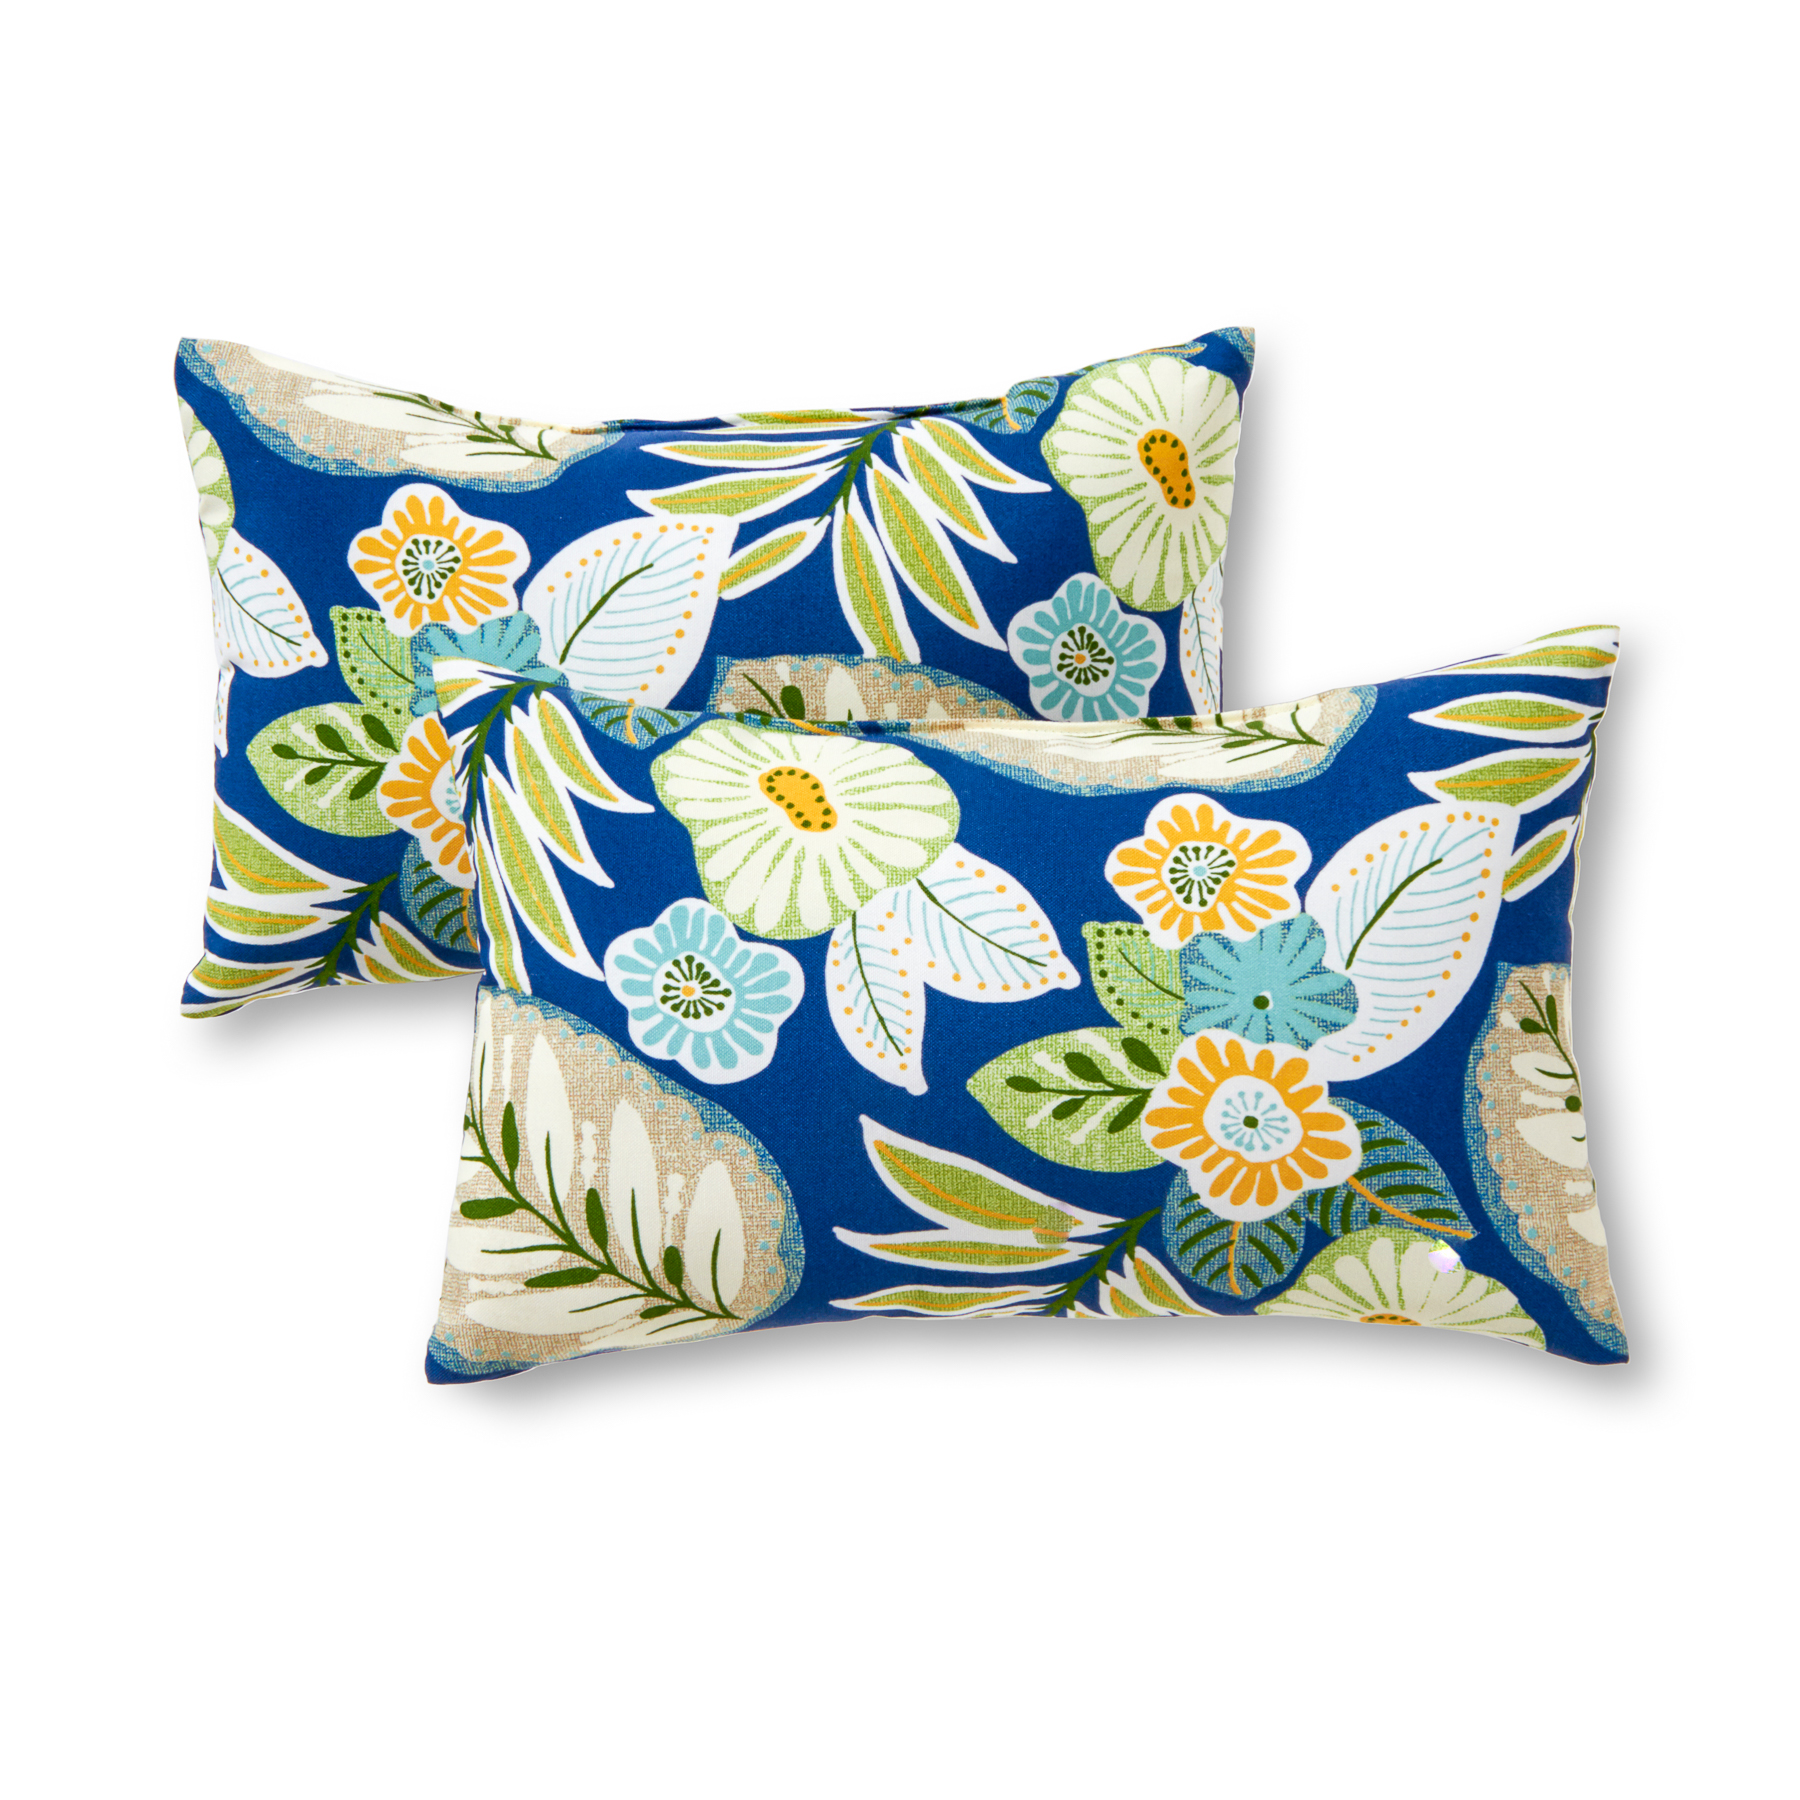 Greendale Home Fashions Marlow Floral Rectangle Outdoor Accent Pillow, Set of 2